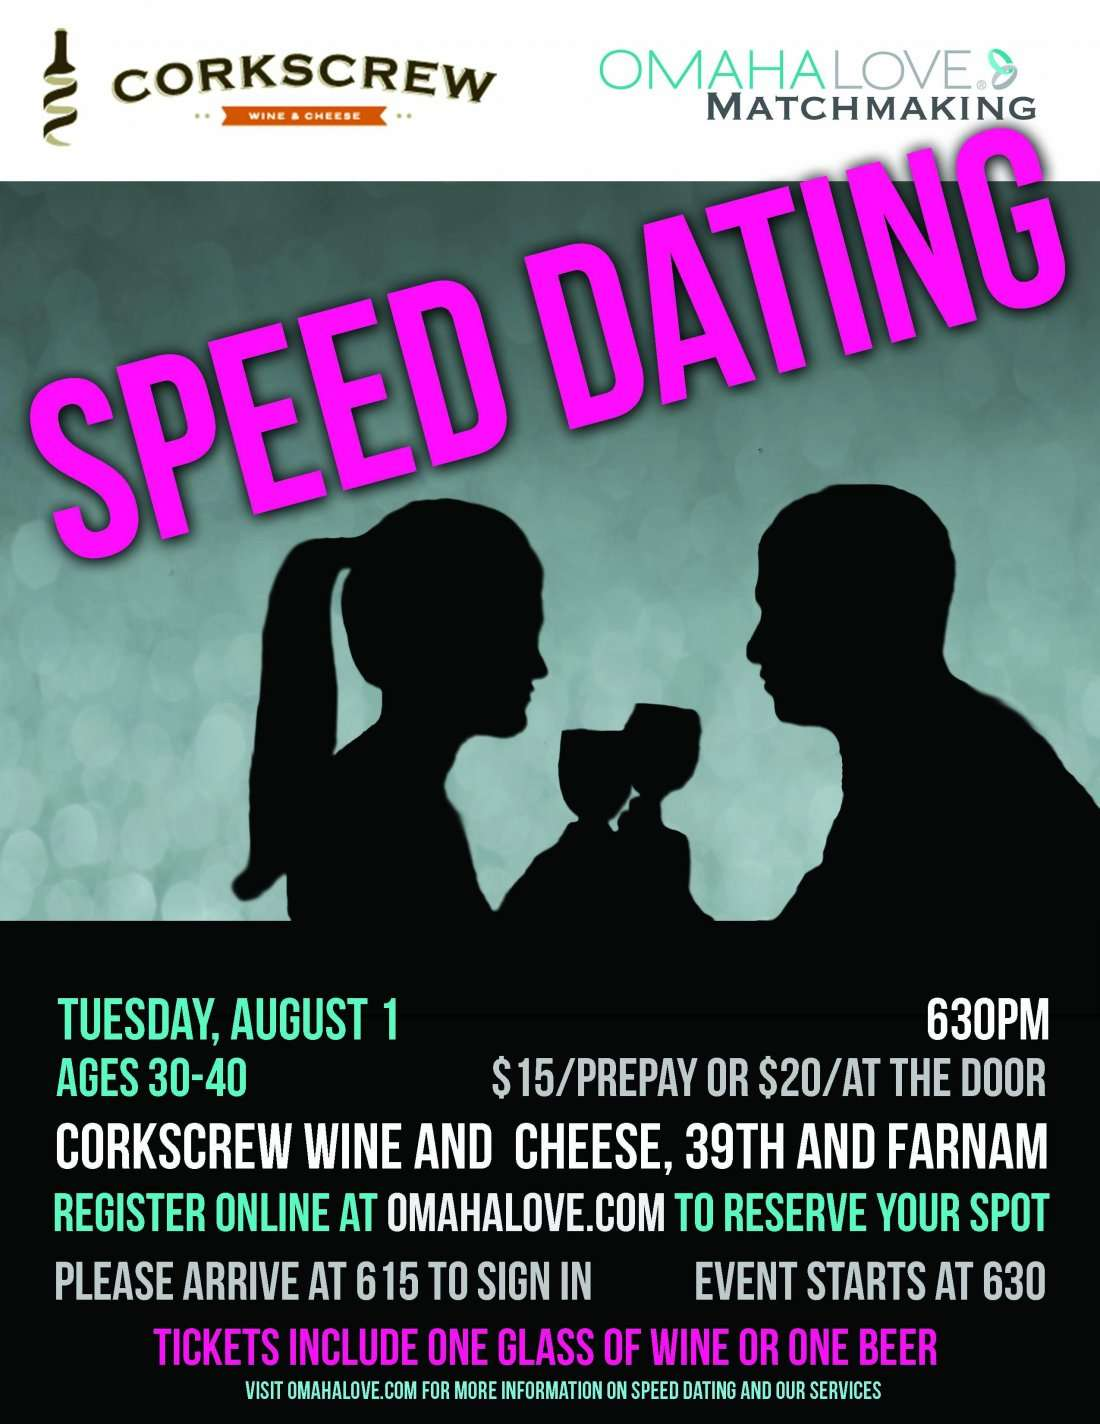 Speed dating melbourne under 25